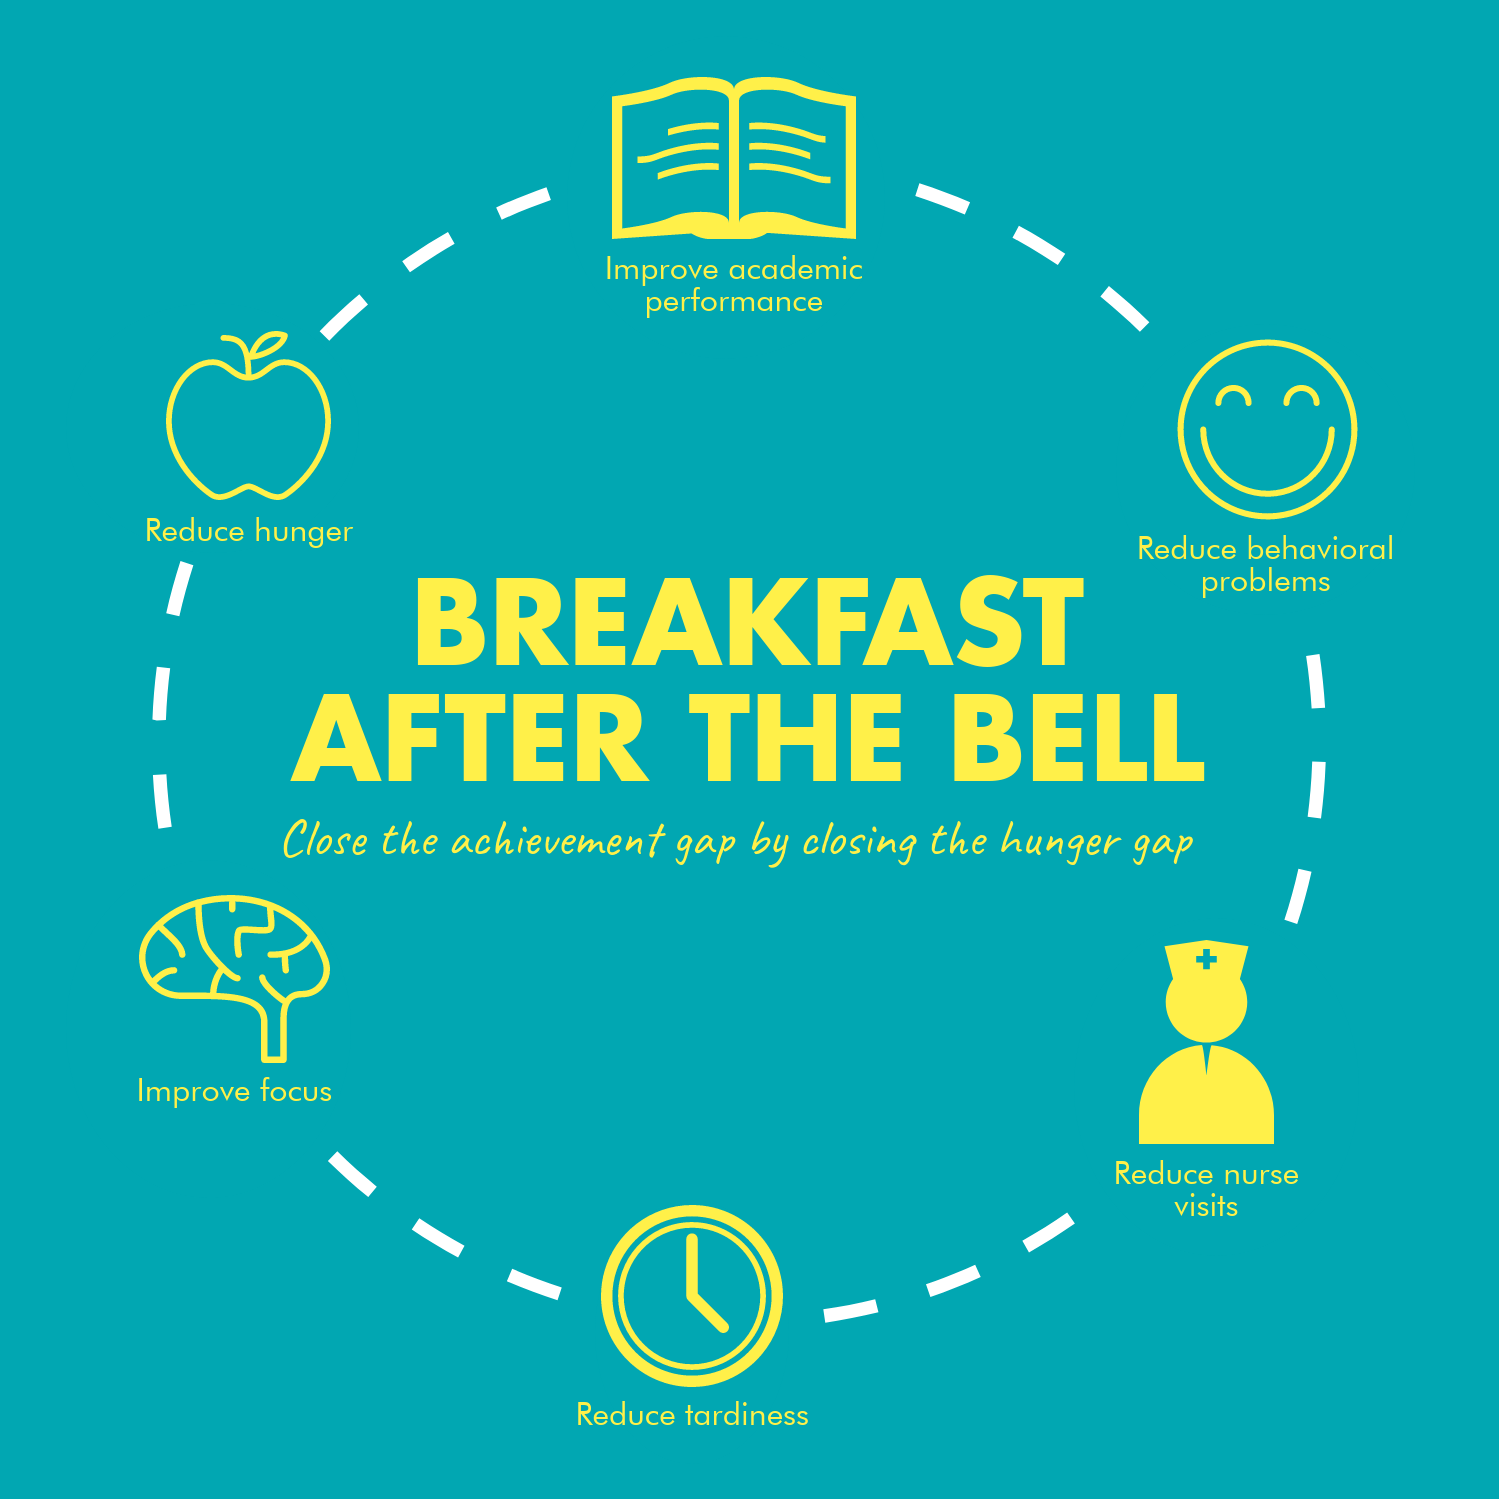 Breakfast After the Bell infographic - Worcester Food Policy Council